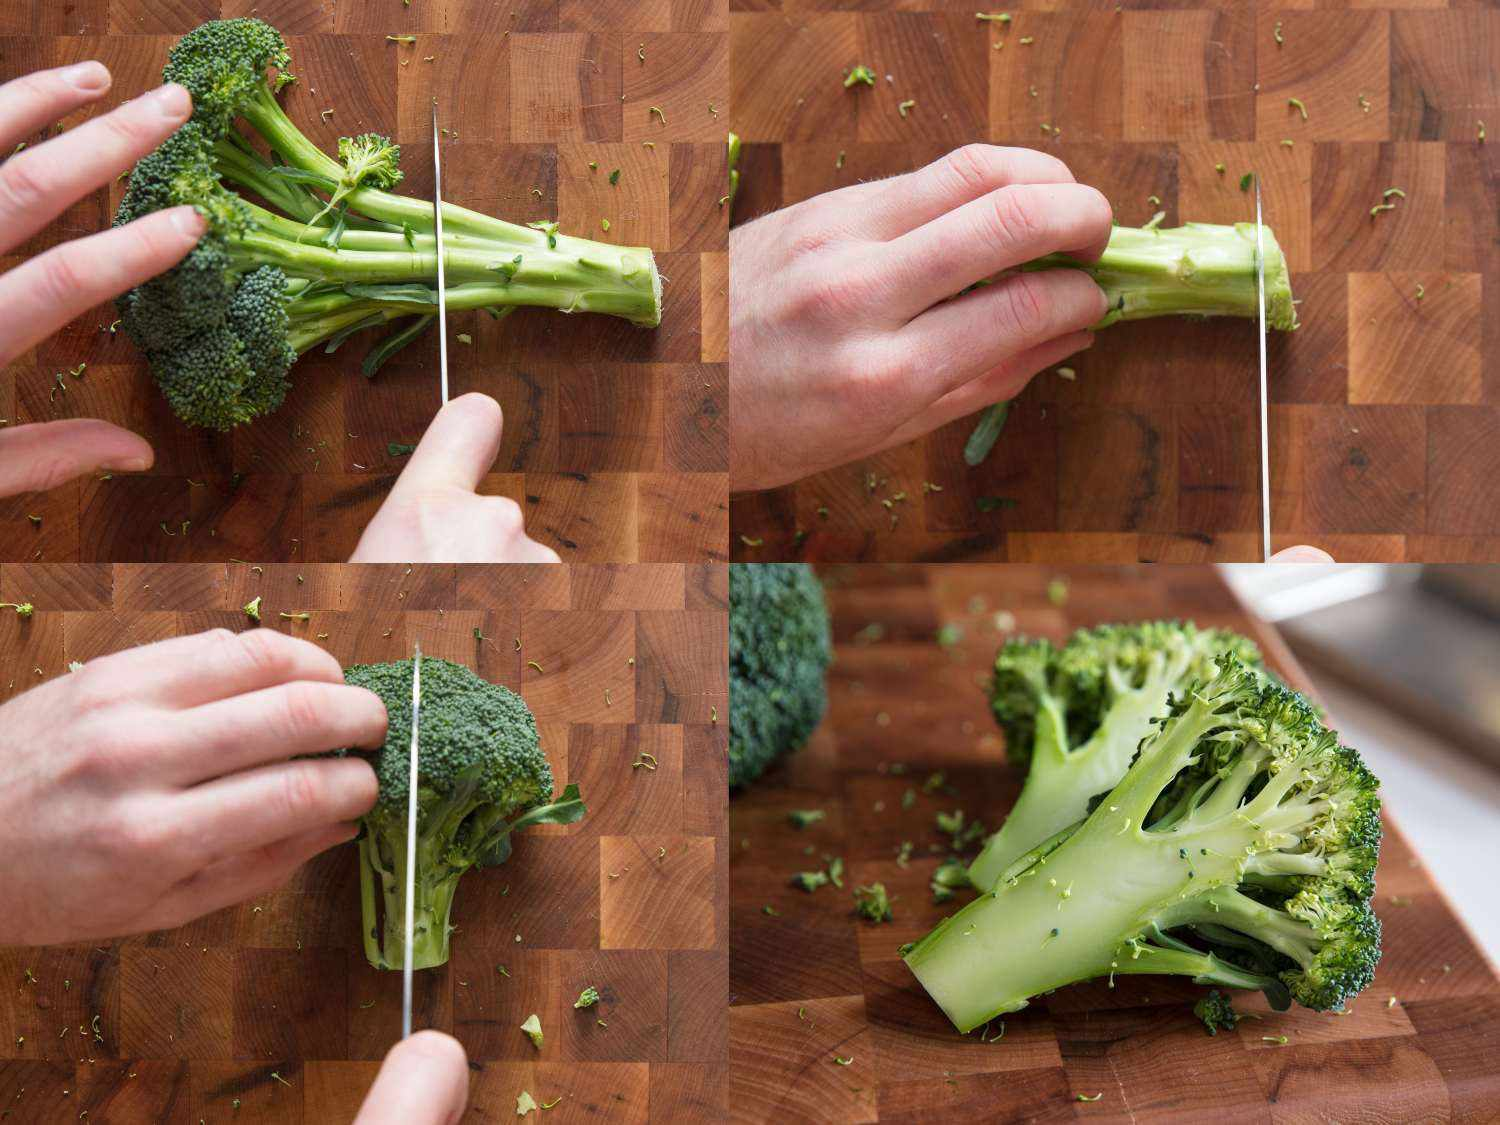 Process shots of cutting broccoli into steaks.